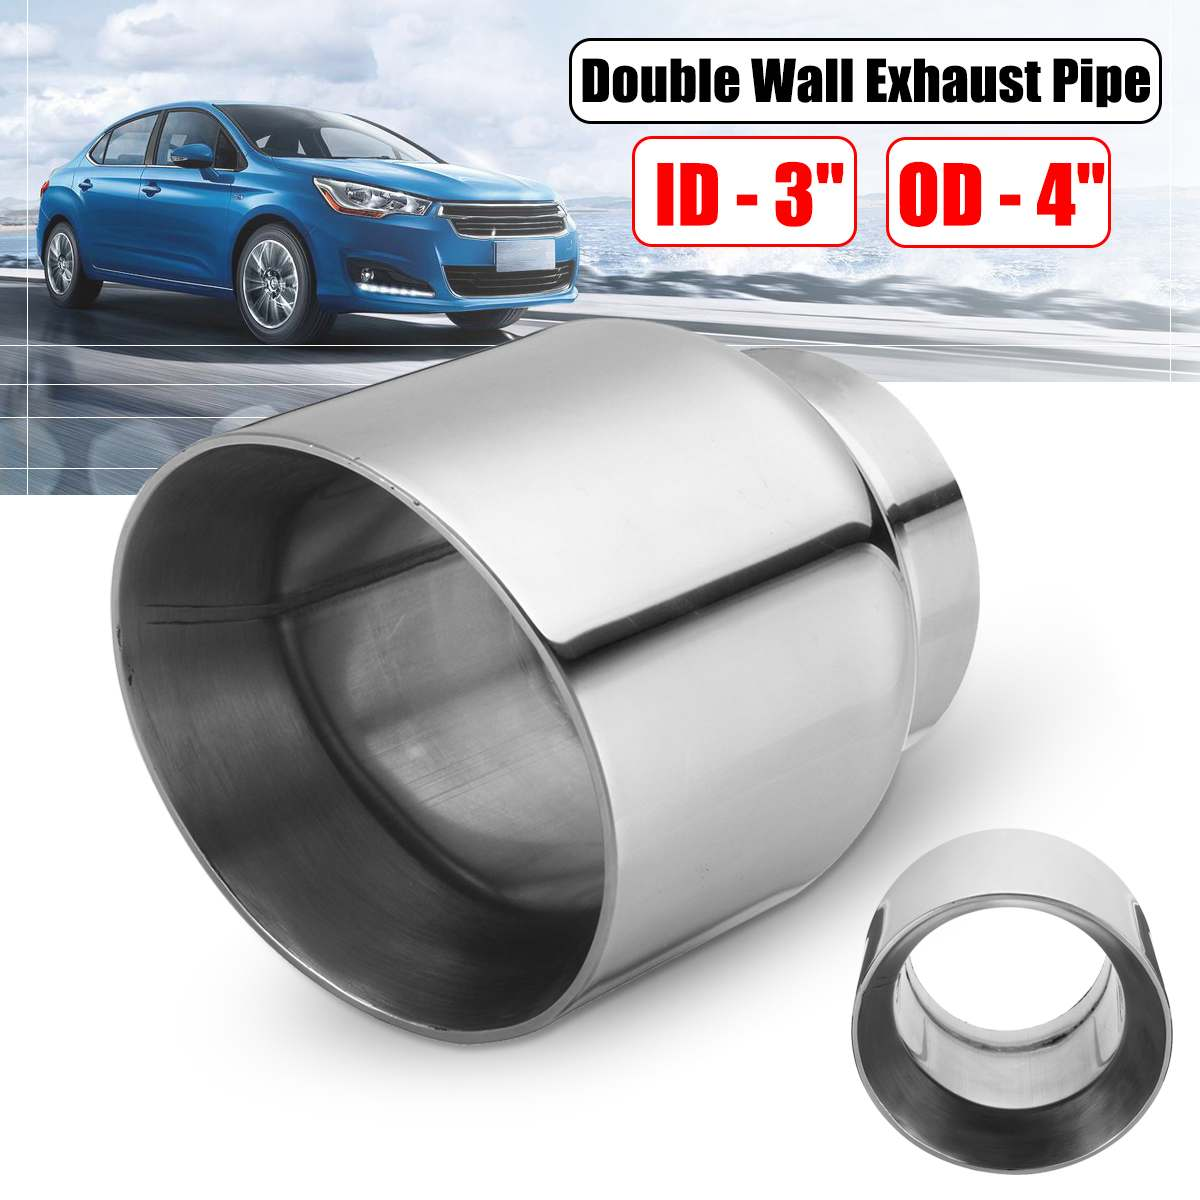 Universal Car Exhaust Tip 3 Inlet 4 Outlet Auto Tail Pipe Muffler Dual Wall Angle Cut Outlet NozzleUniversal Car Exhaust Tip 3 Inlet 4 Outlet Auto Tail Pipe Muffler Dual Wall Angle Cut Outlet Nozzle